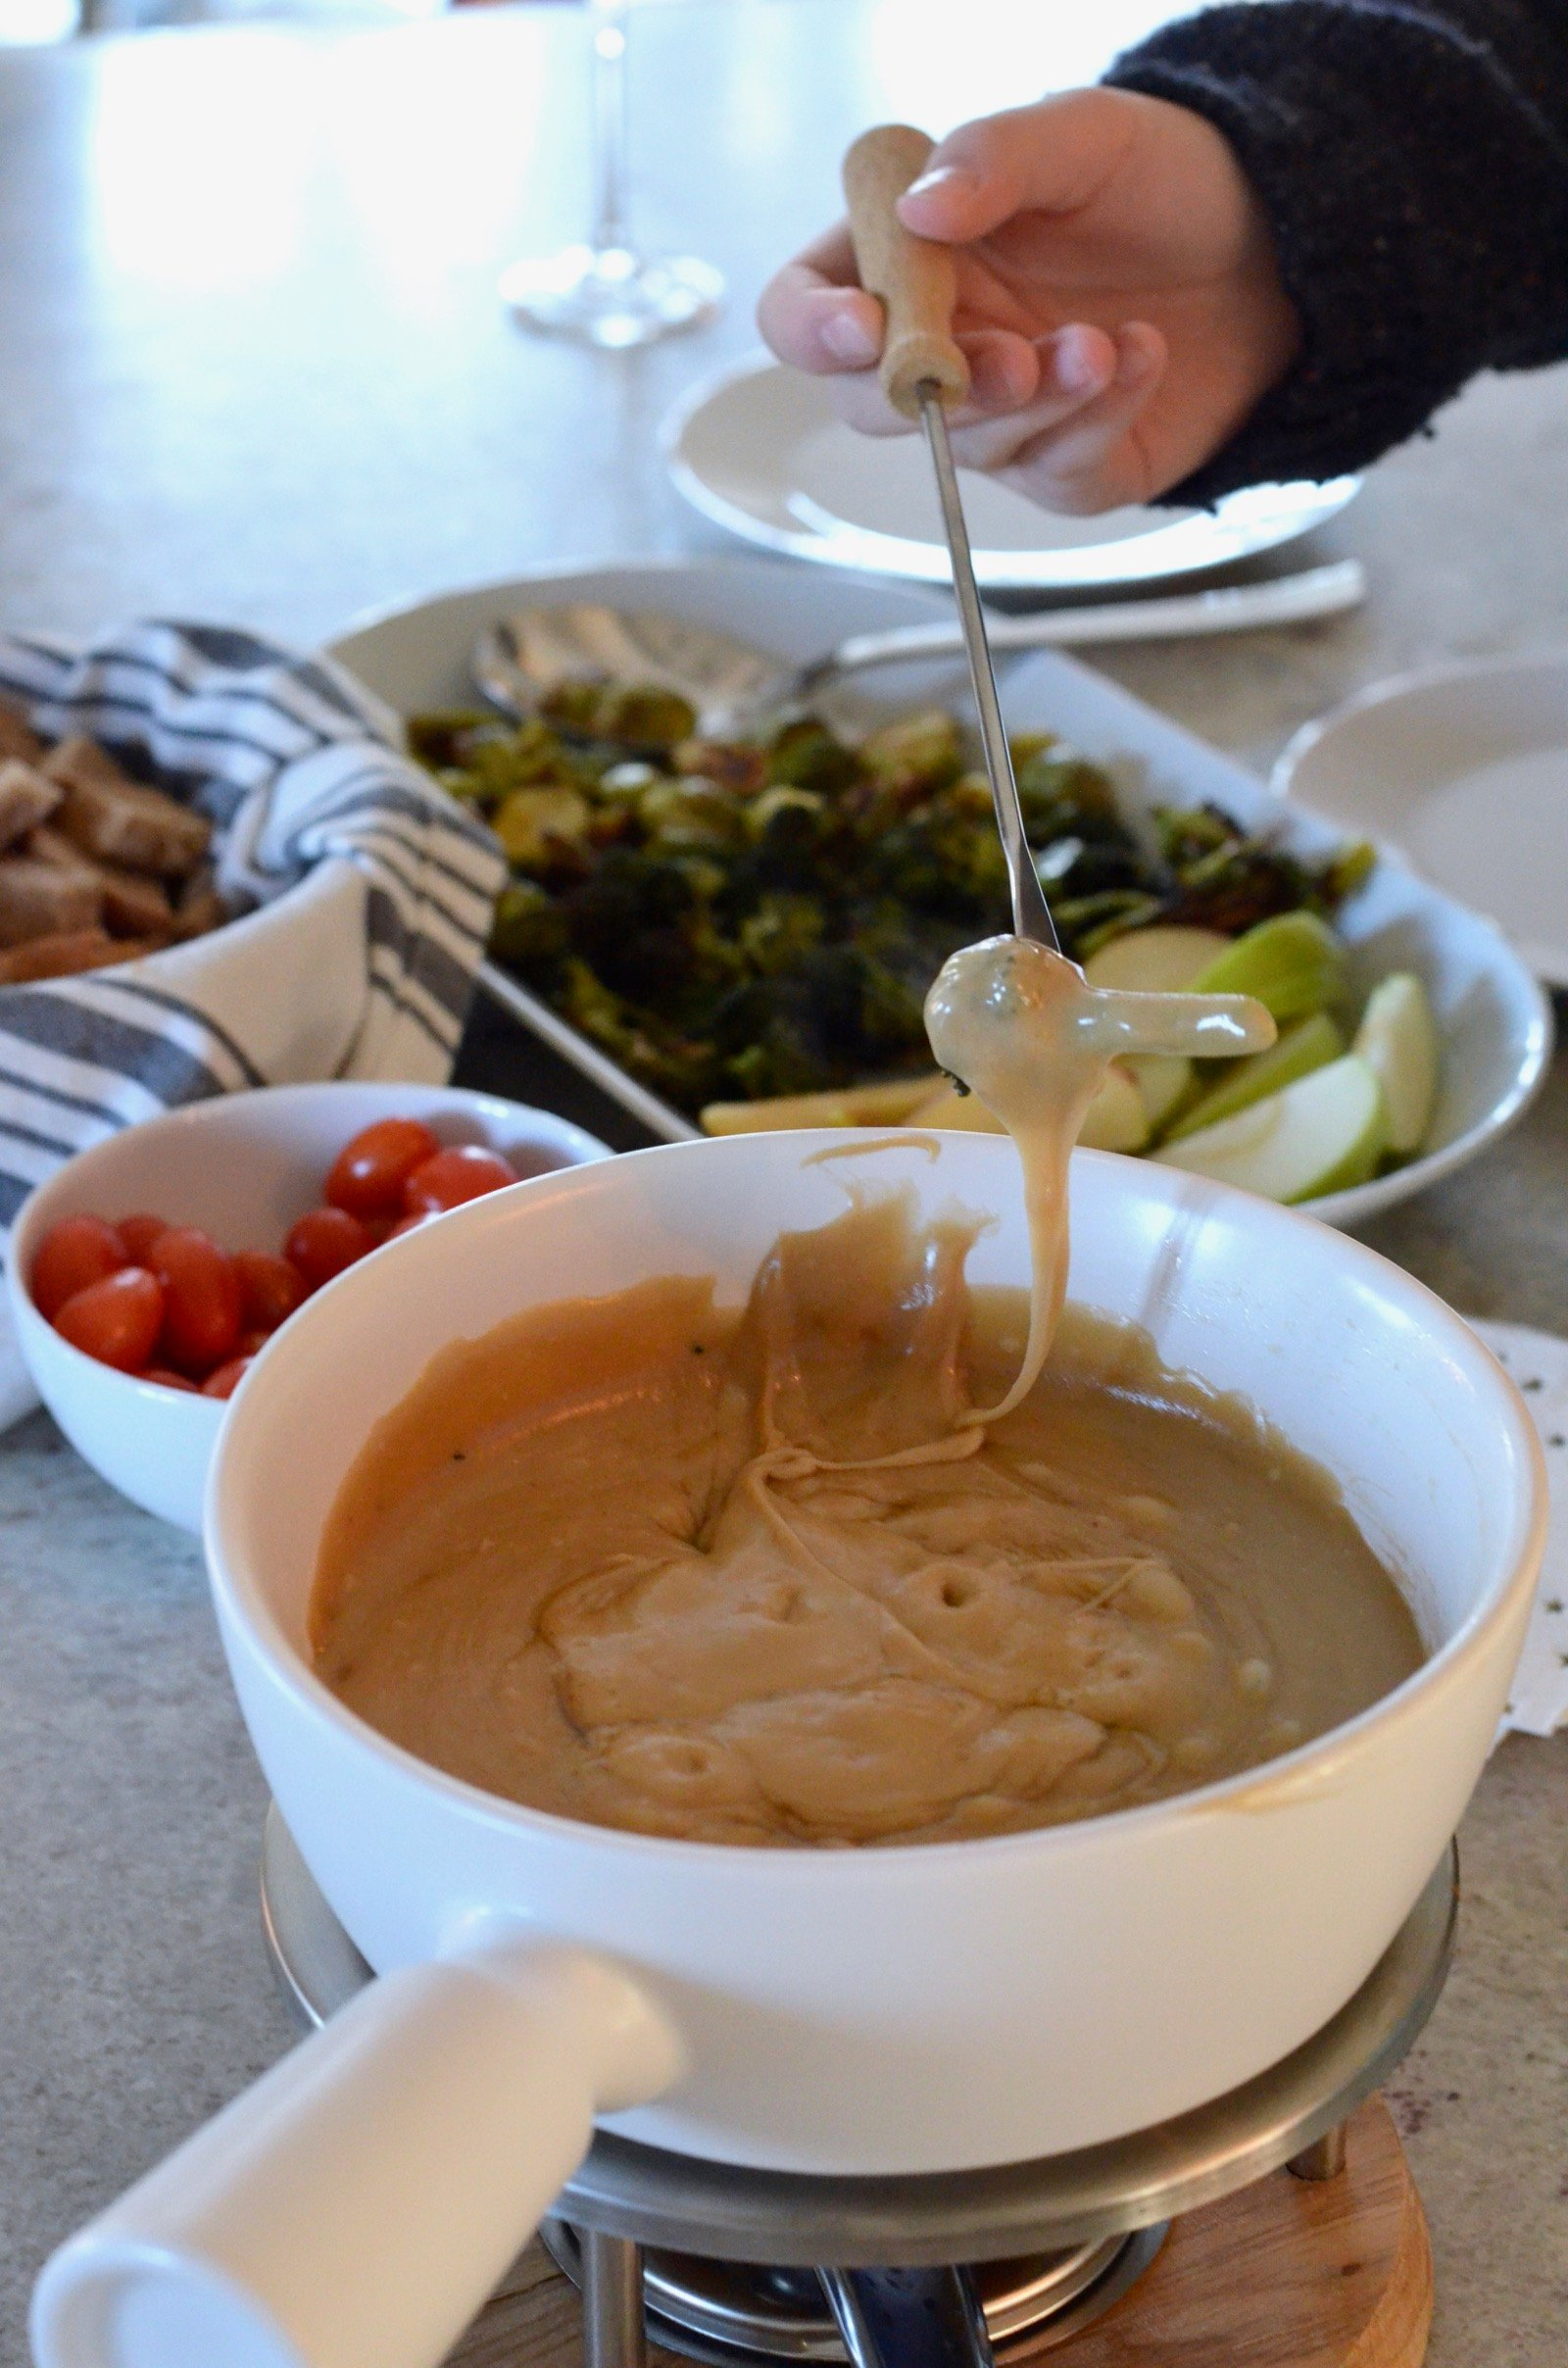 Dipping Roasted Vegetables in an Easy Fondue Recipe